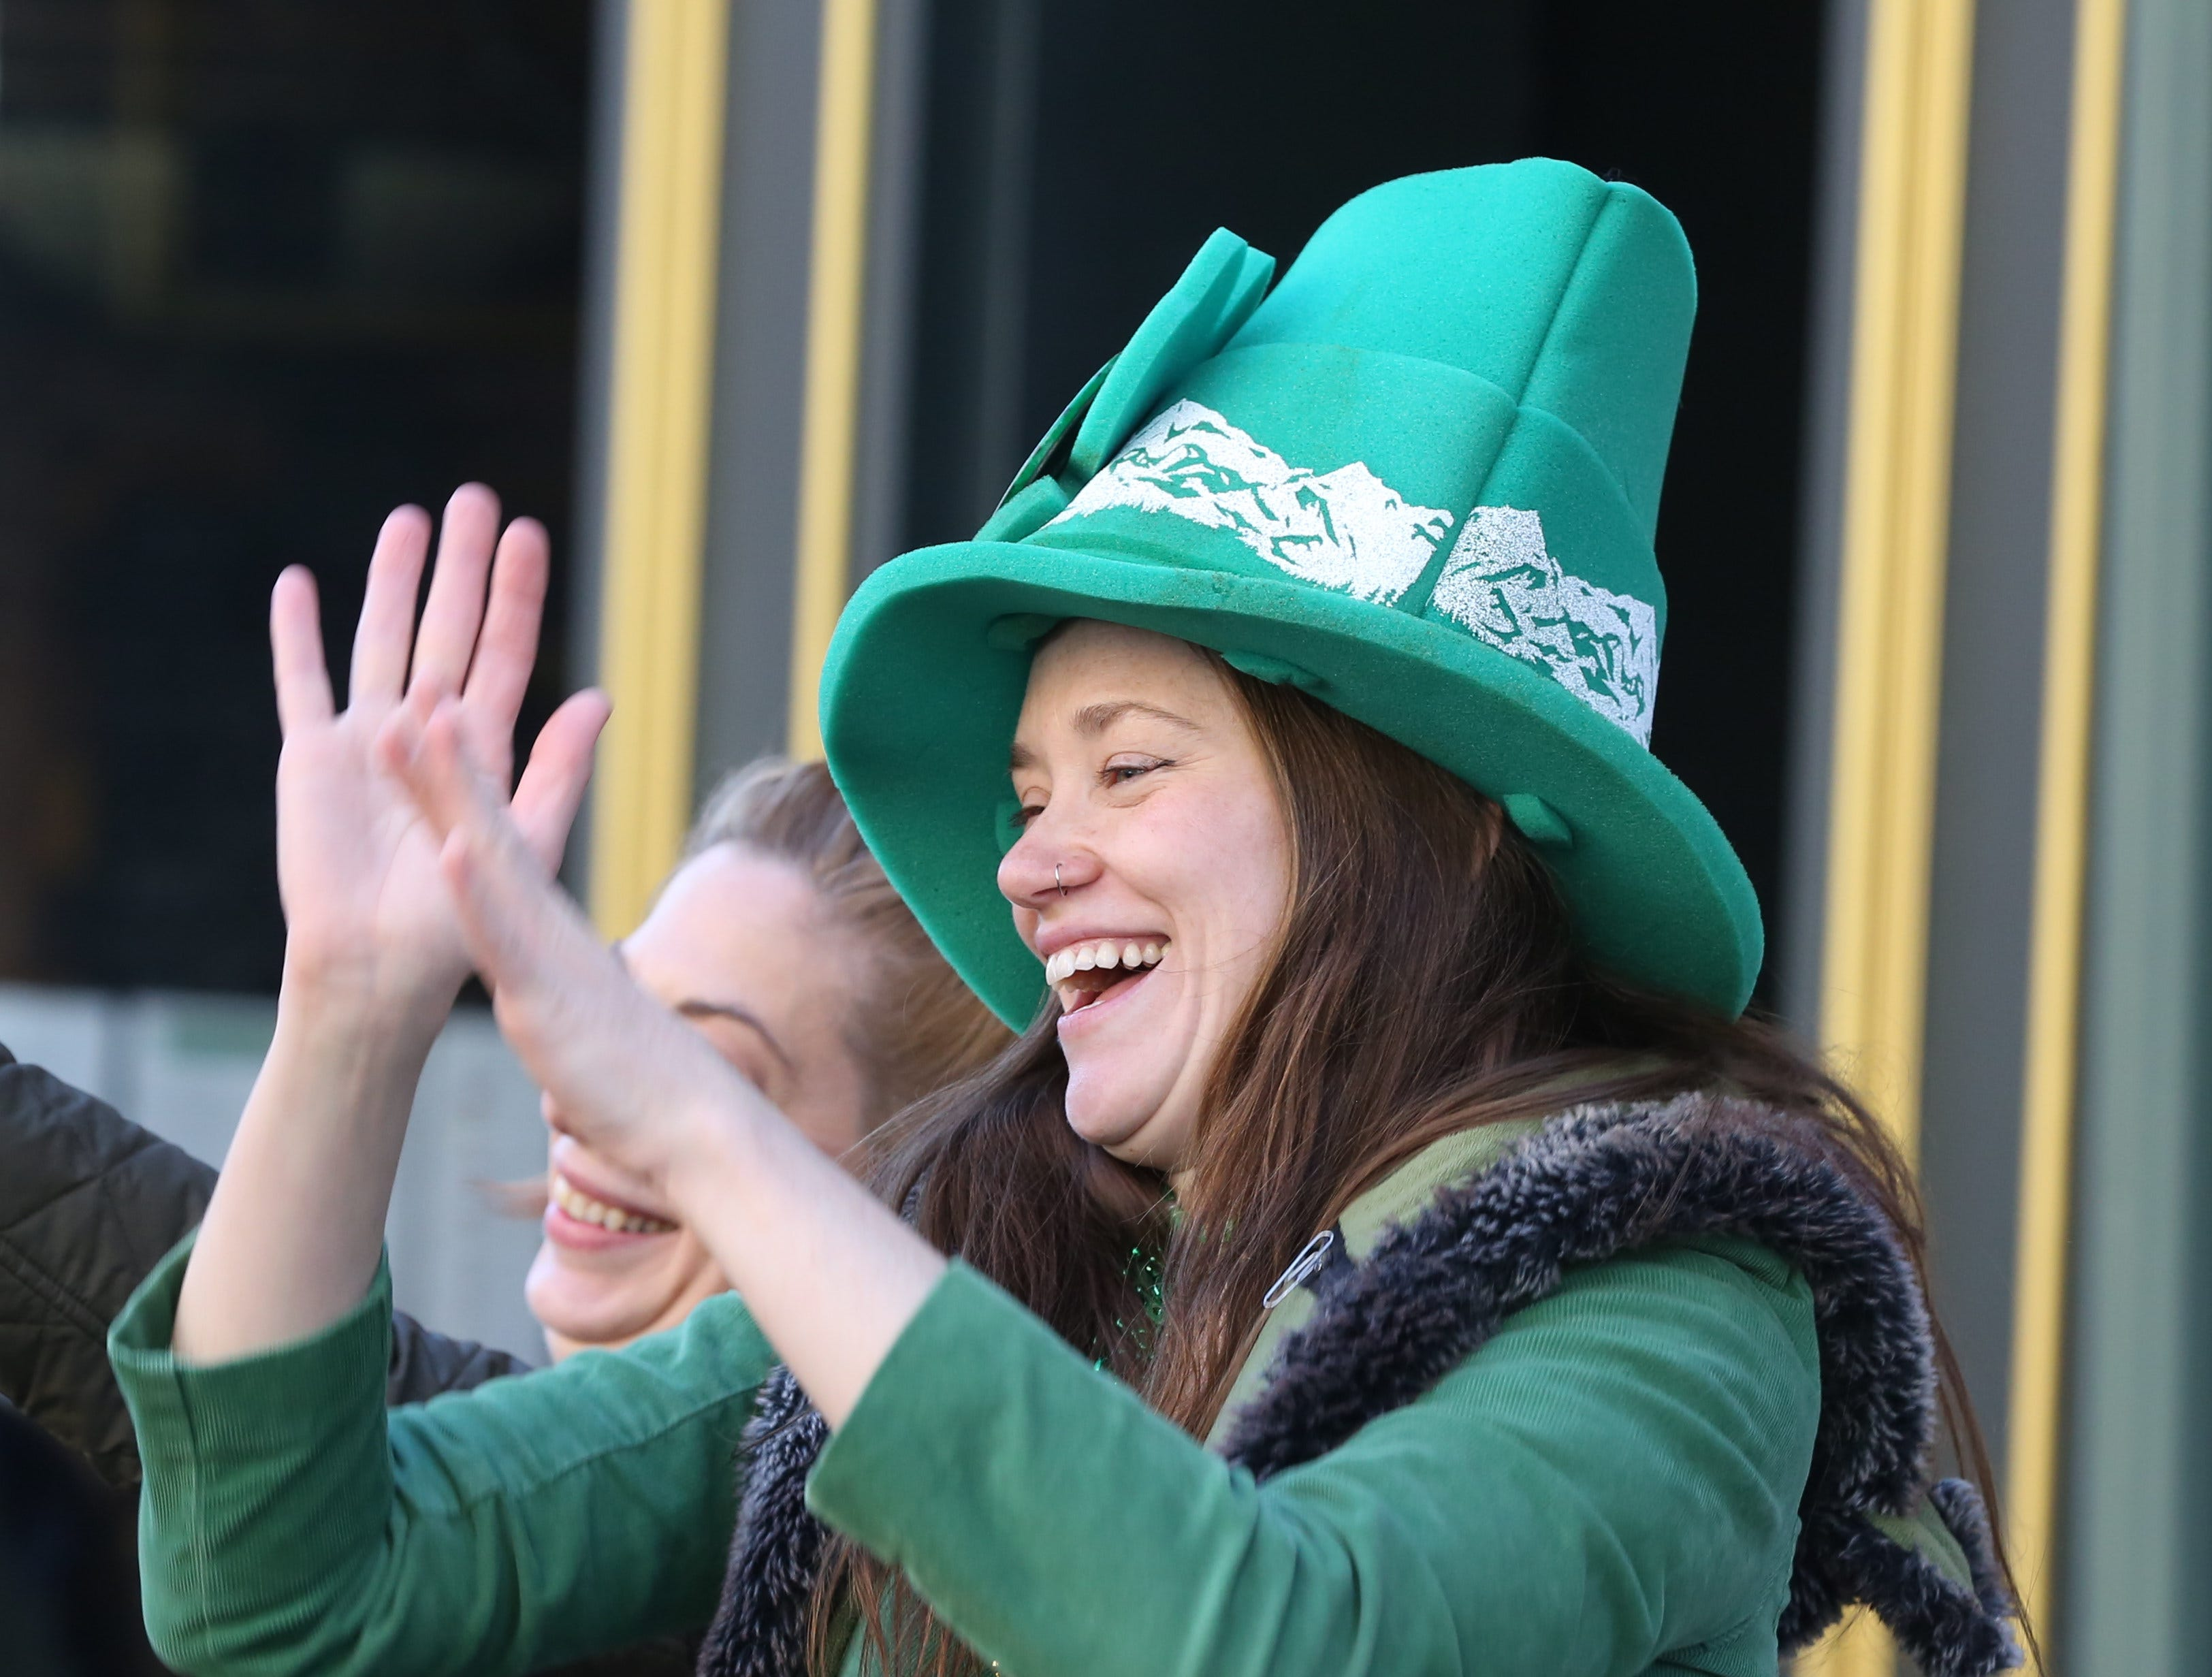 Nora Driscoll celebrates during the 30th Annual Peekskill St. PatrickÕs Day Parade in Peekskill March 9, 2019.